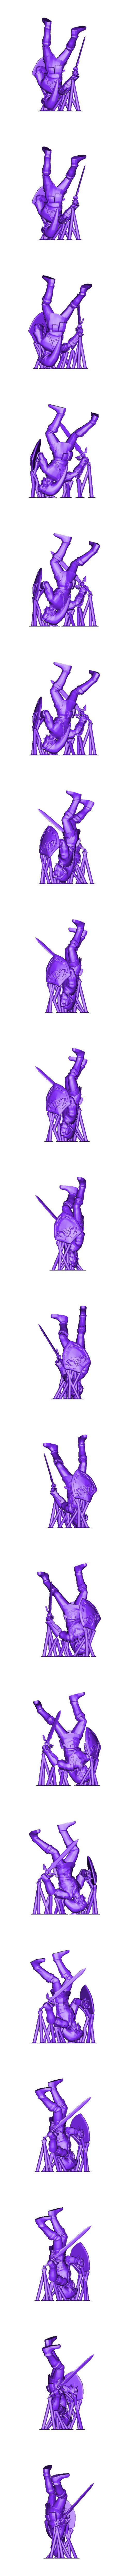 Link_v2.stl Download free STL file Link (with supports) • Object to 3D print, mcgybeer